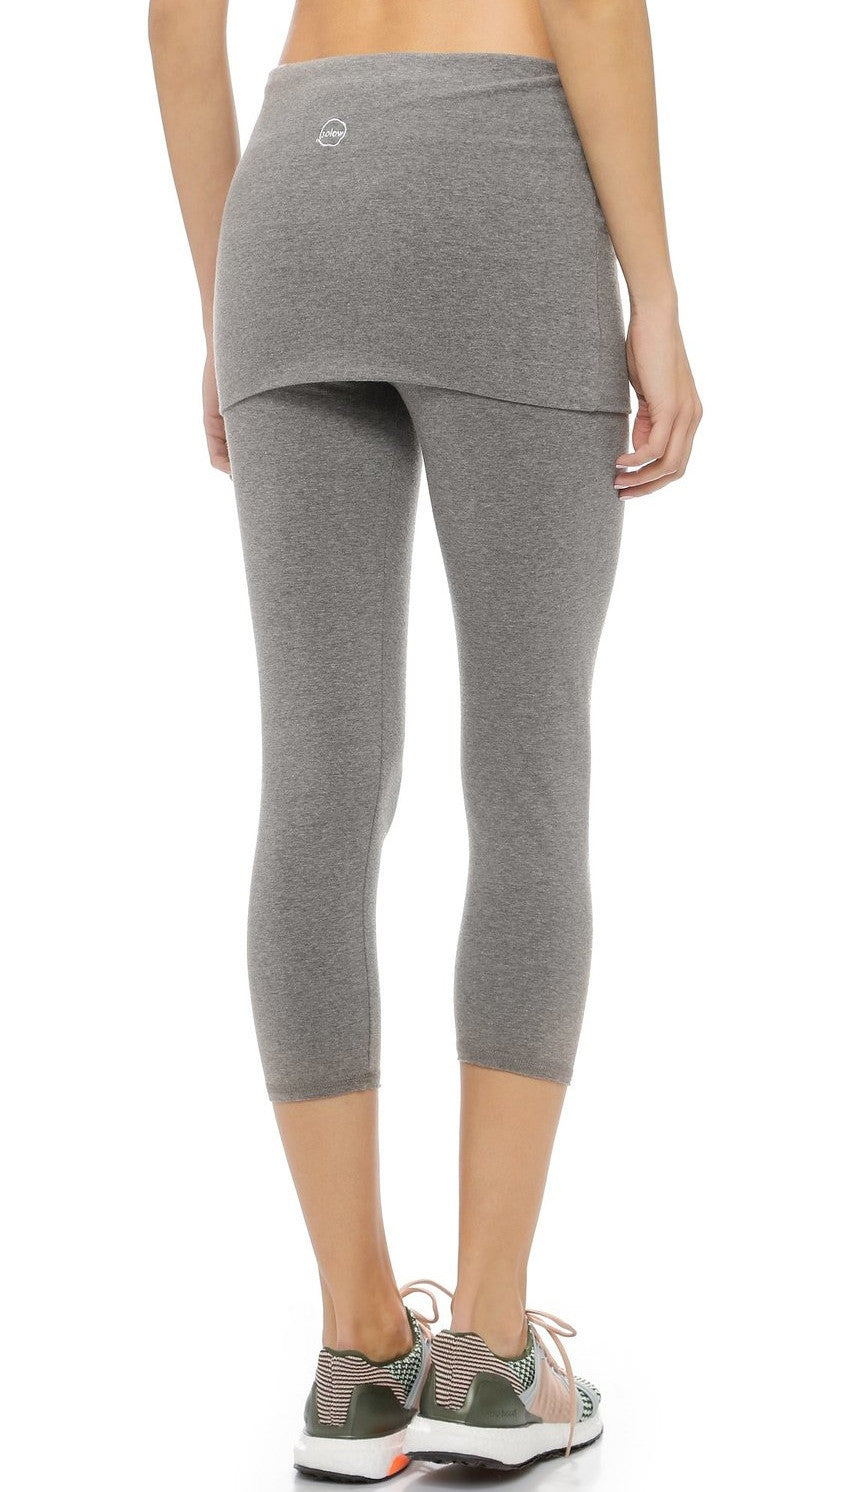 So Low Foldover Skirt Cropped Leggings Medium Heather Grey